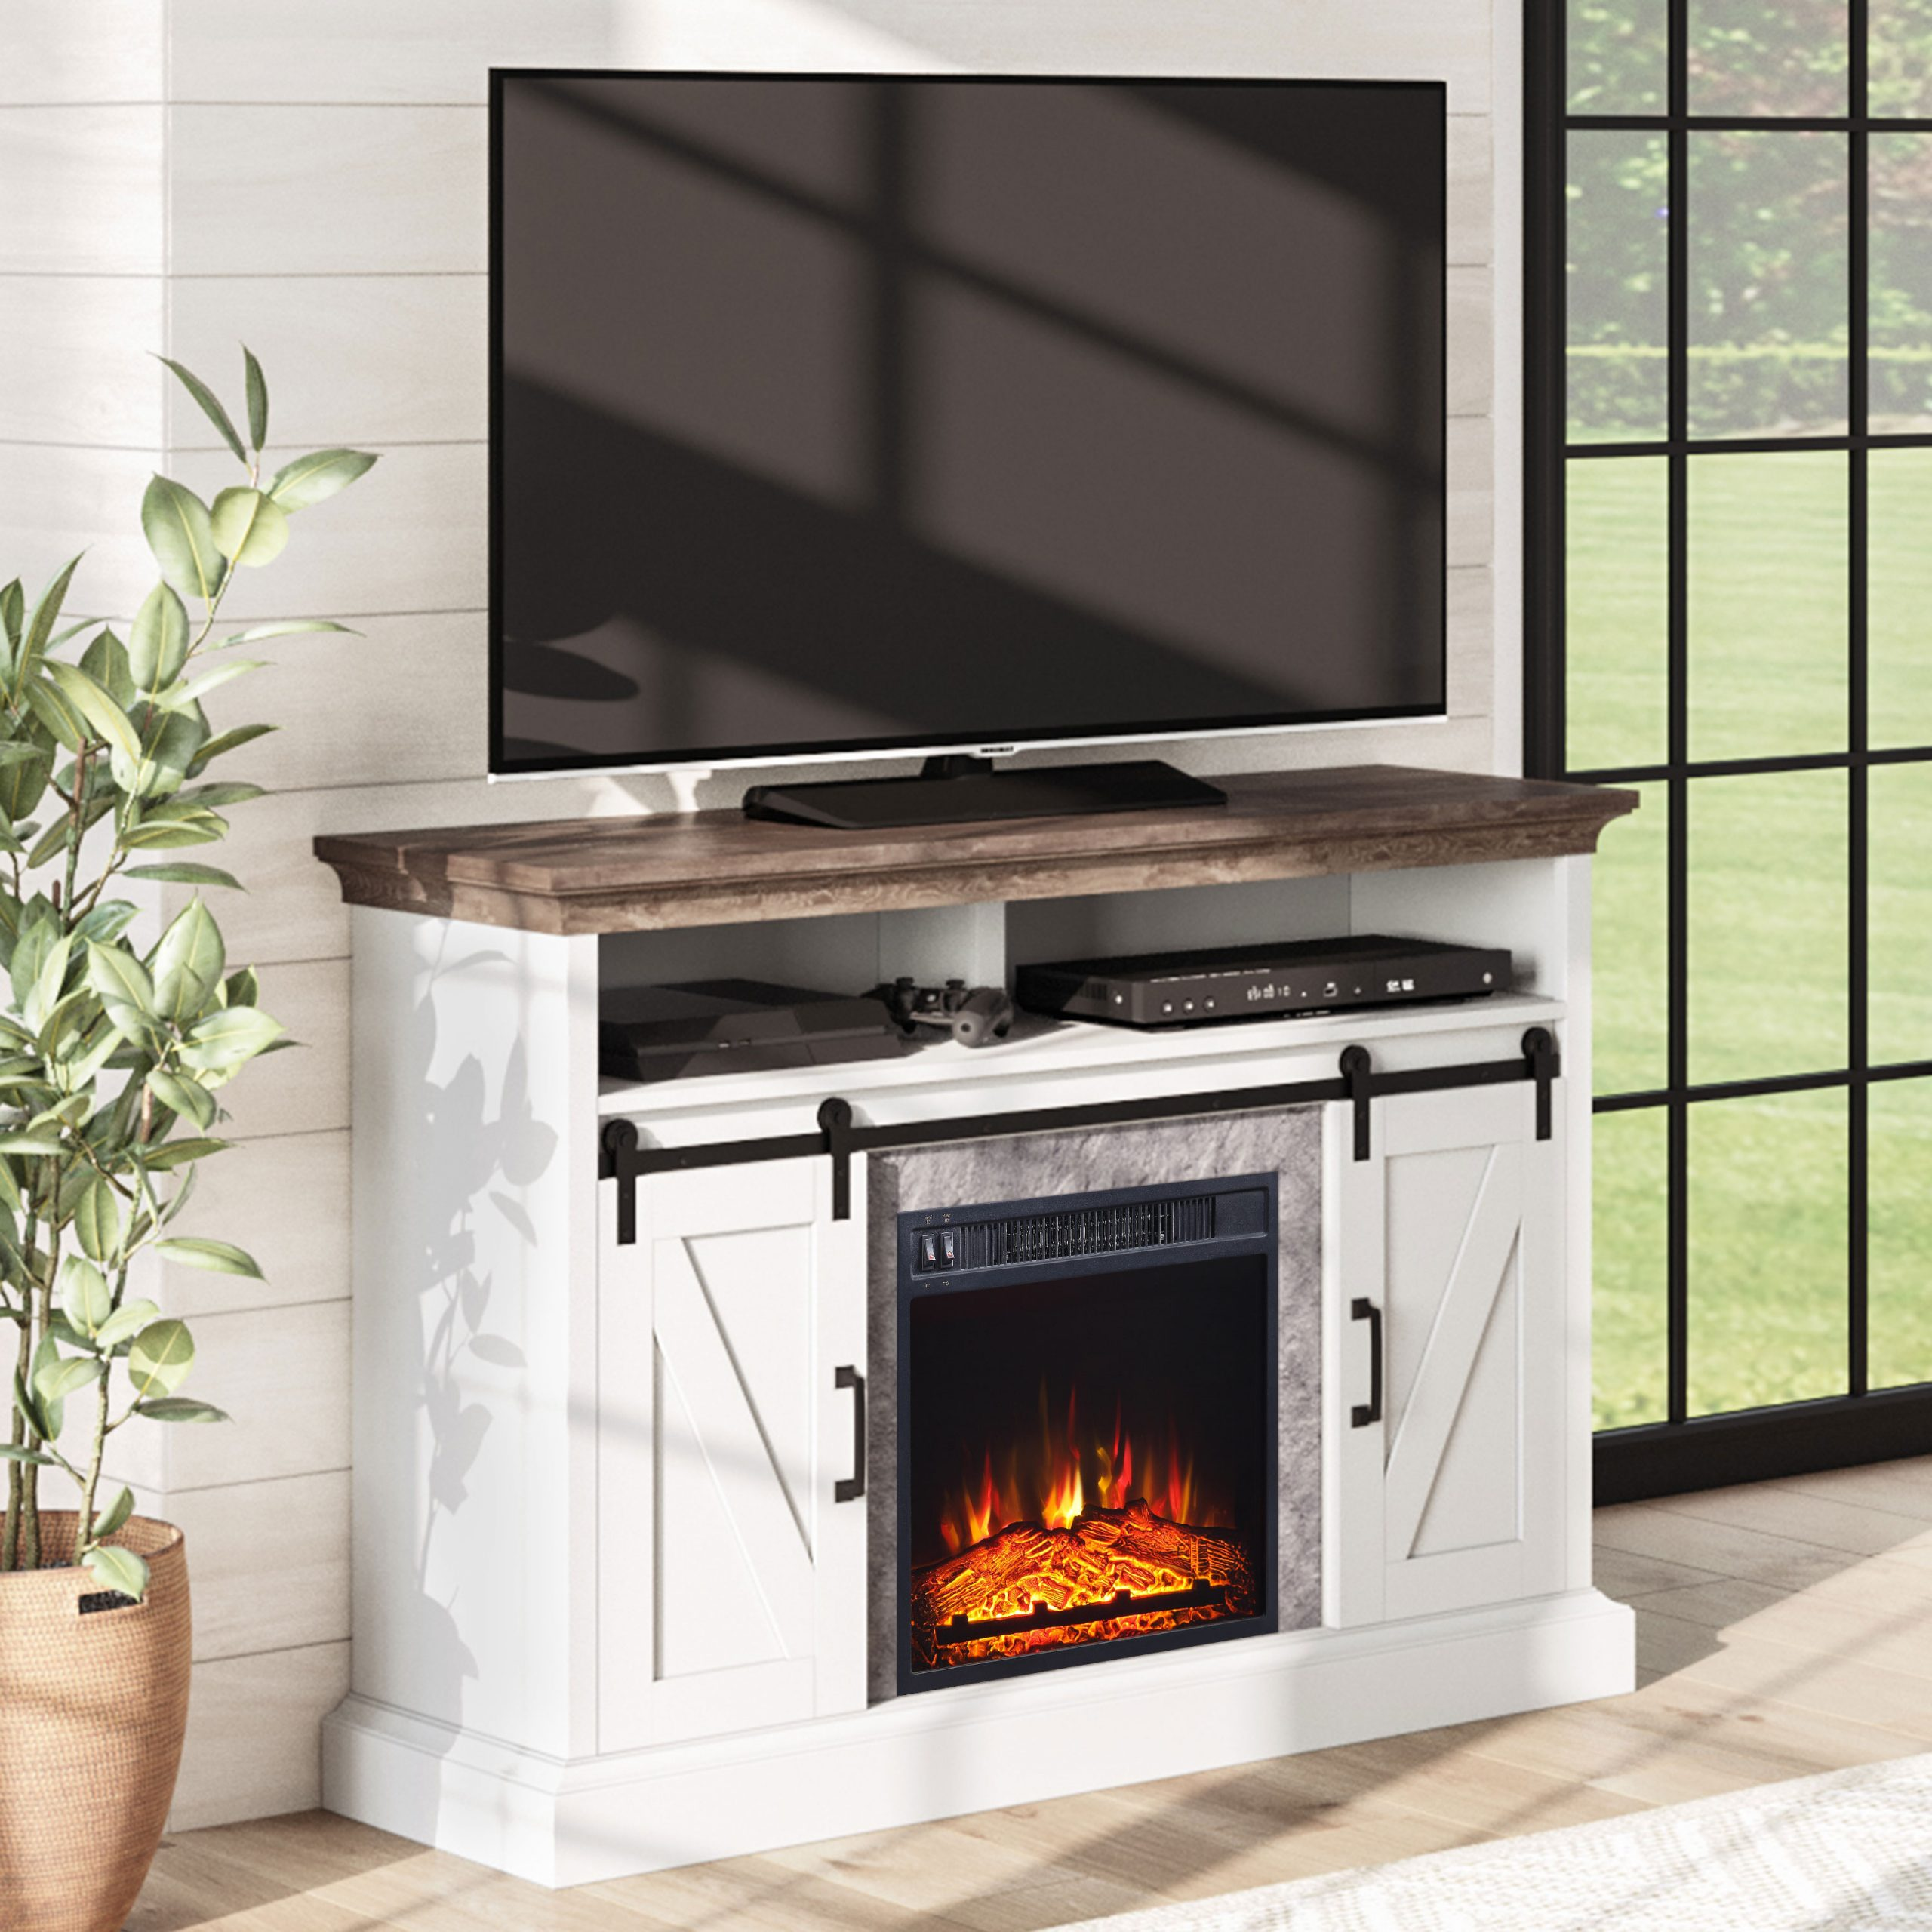 """Kamari Tv Stands For Tvs Up To 58"""" Regarding 2017 Whalen Allston Barn Door Fireplace Tv Stand For Tvs Up To (View 17 of 25)"""